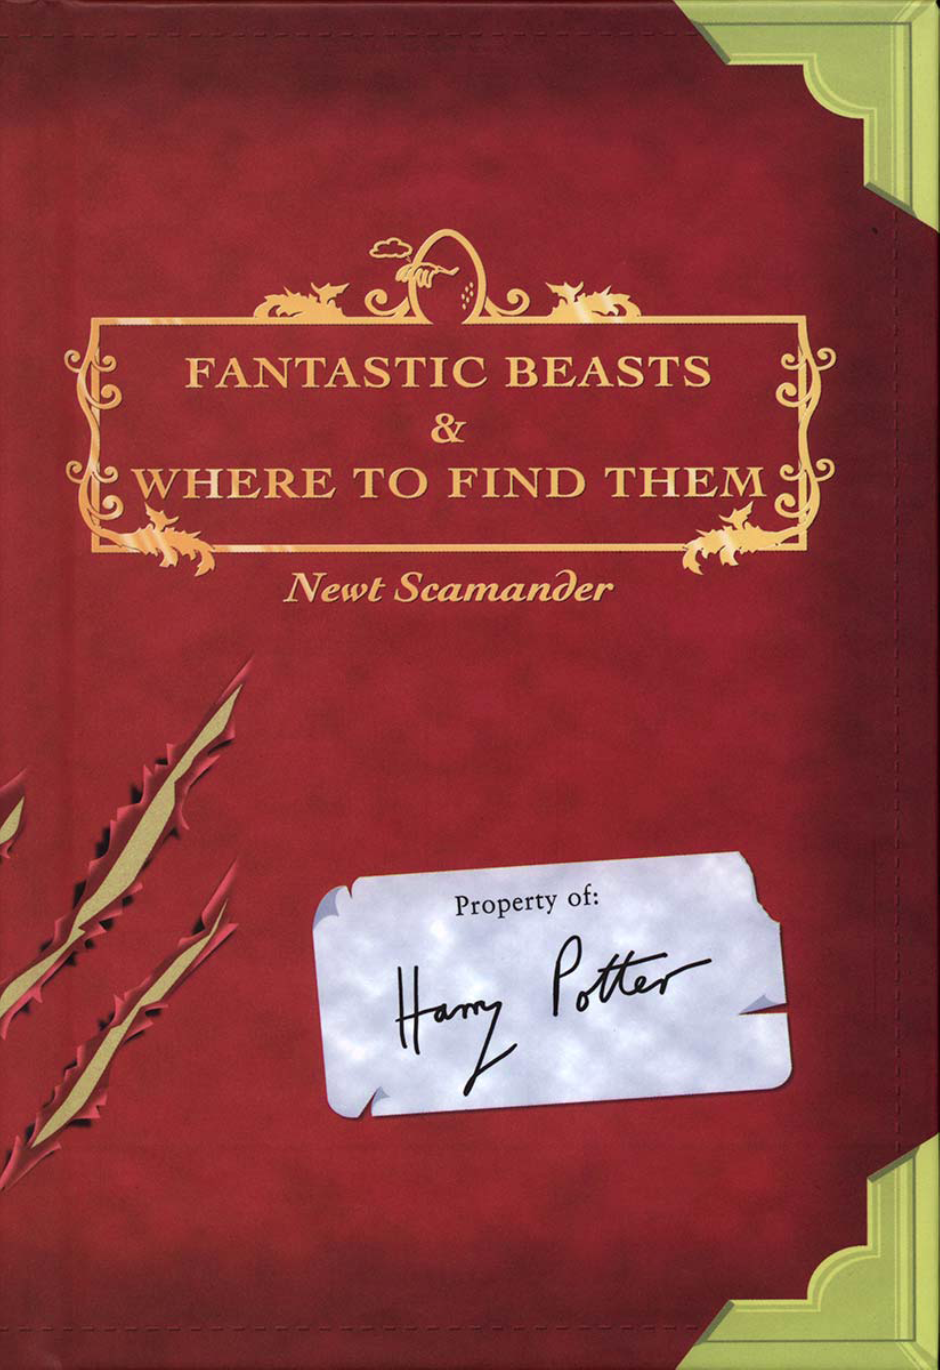 Fantastic-Beasts-and-Where-to-Find-Them-harry-potter-26796486-940-1370.jpg